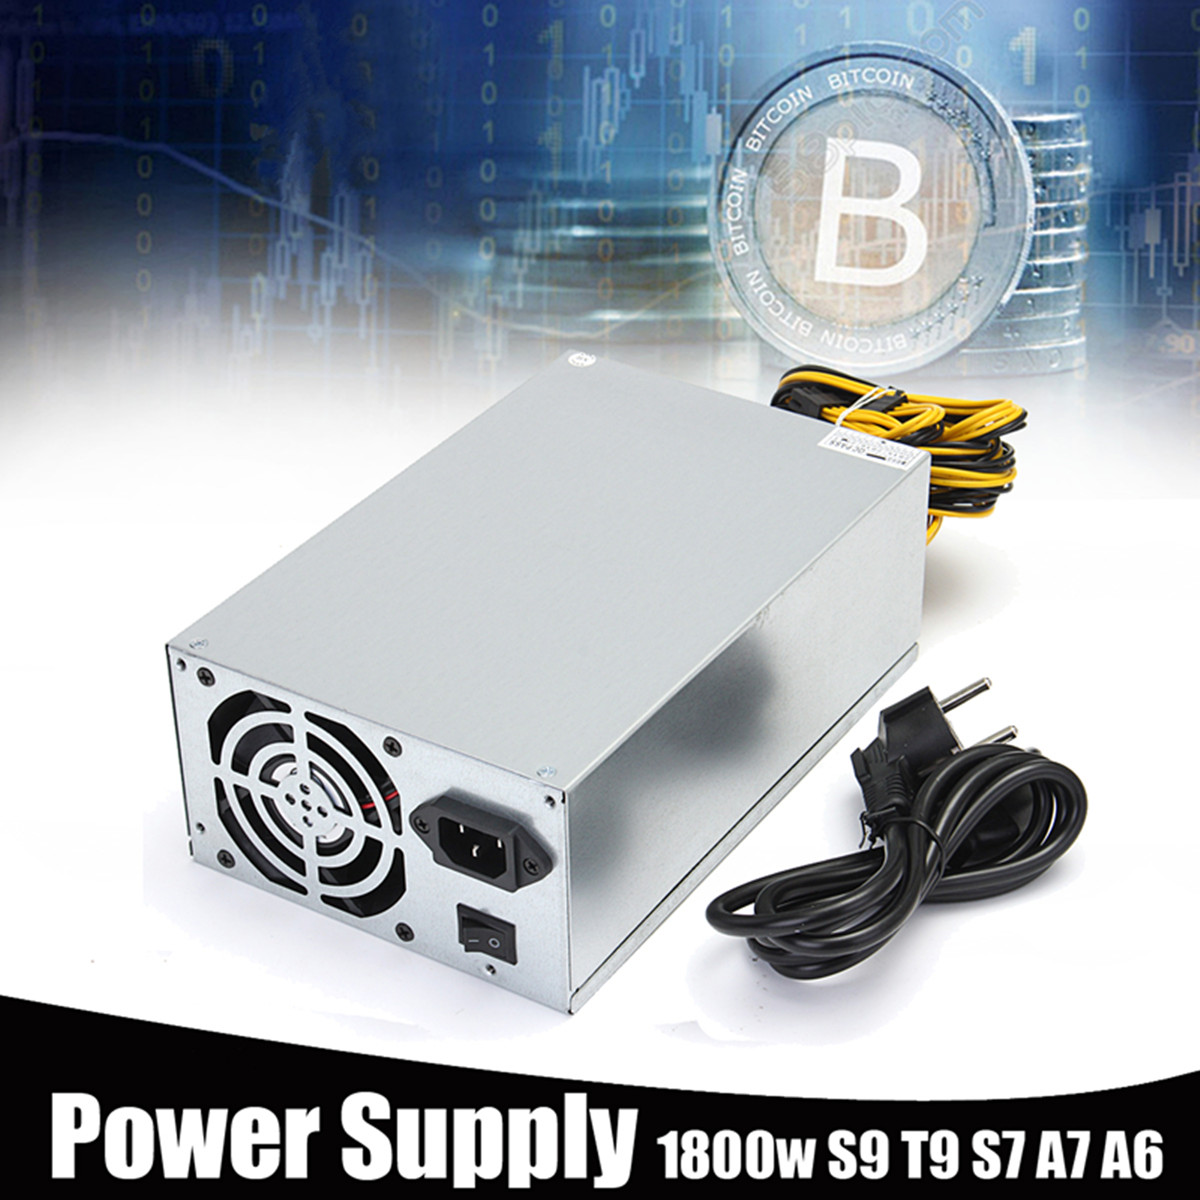 10 x 6 pin 1800W Power Supply Suitable For S9 T9 S7 A7 A6 E9 A4 Miner High Quality Computer power Supply For BTC Mining new max 1850w miner mining power supply 6 pin for antminer coin btb s9 s7 a7 a6 l3 r4 high quality computer power supply for btc